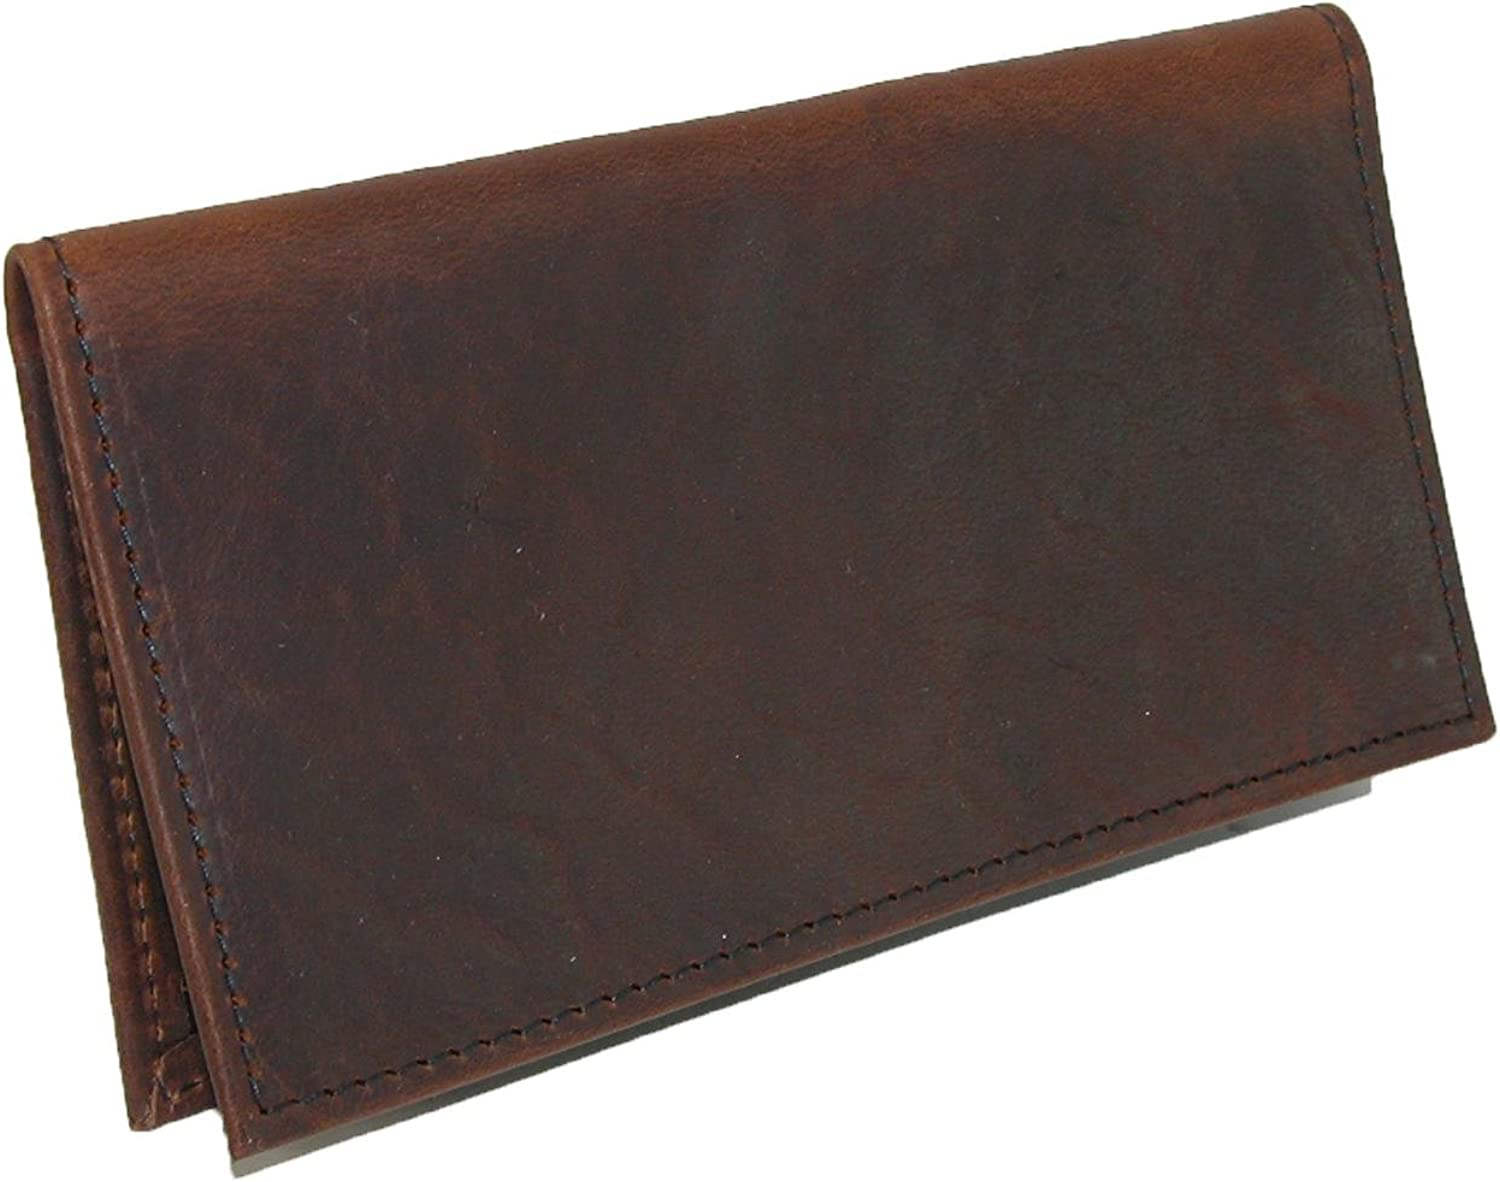 Boston Leather Unisex Textured Bison Leather Checkbook Cover, Check Book Protection Dark Pecan at  Women's Clothing store